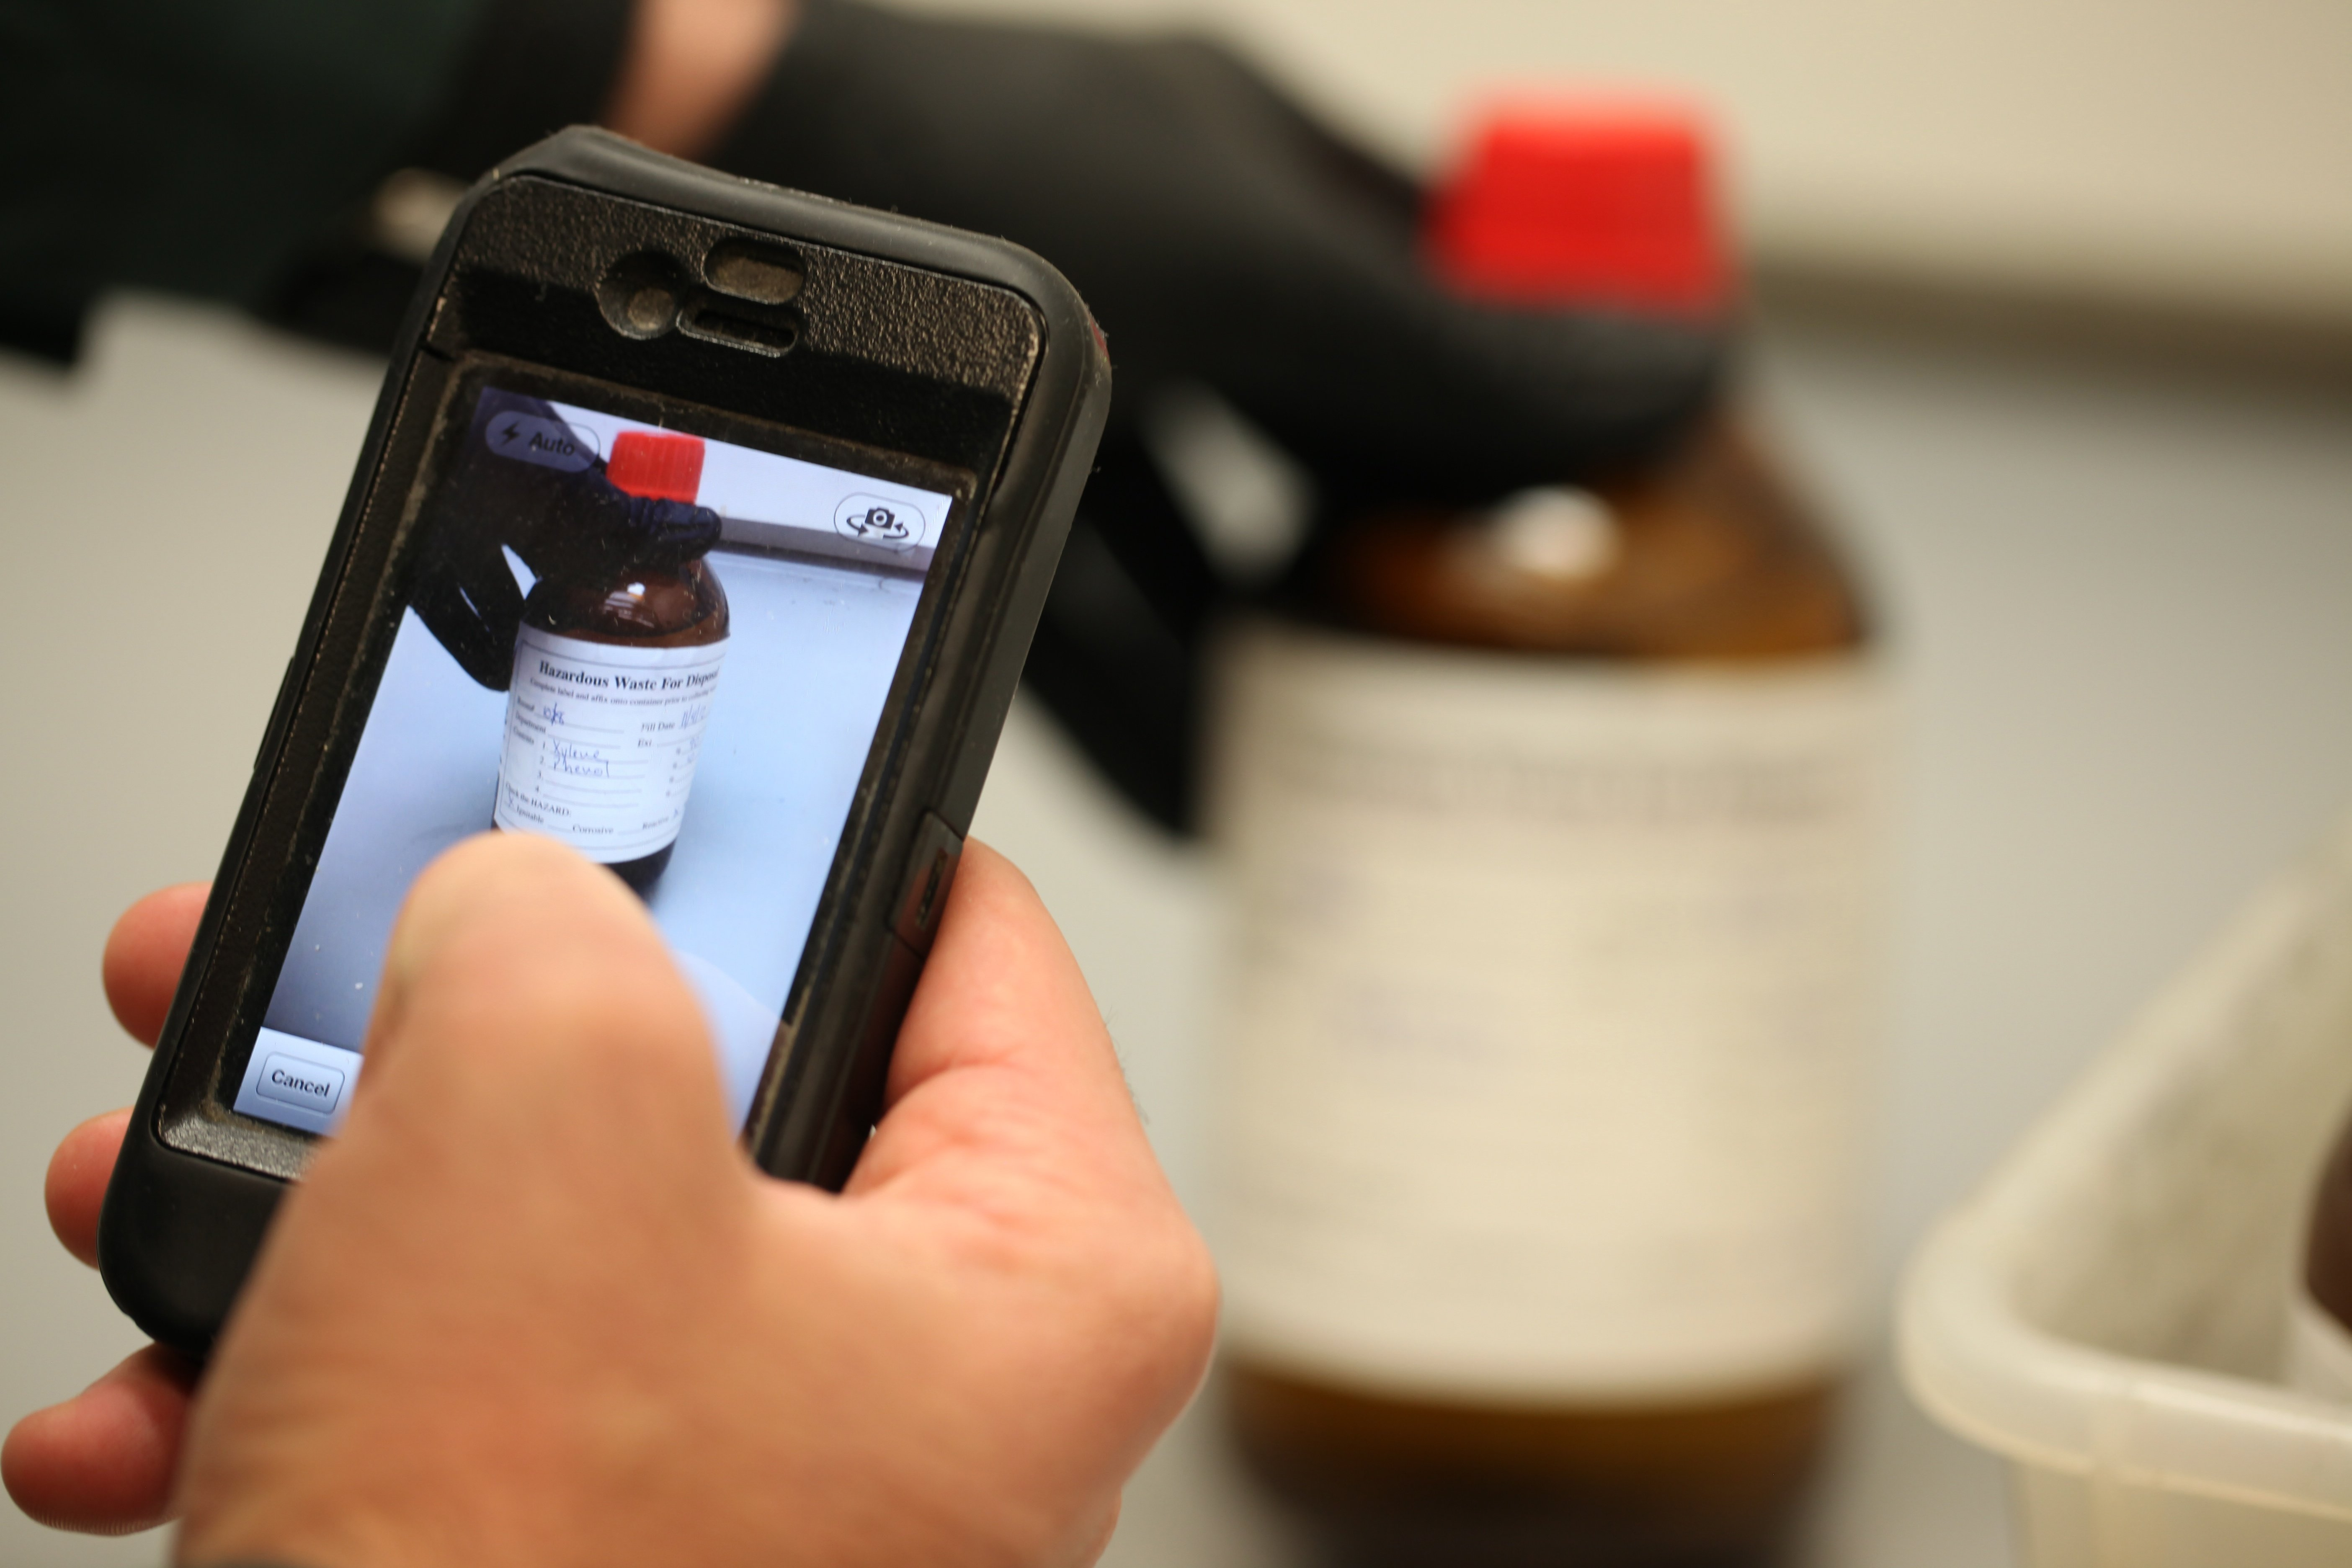 Worker scans chemical bottle label with mobile phone